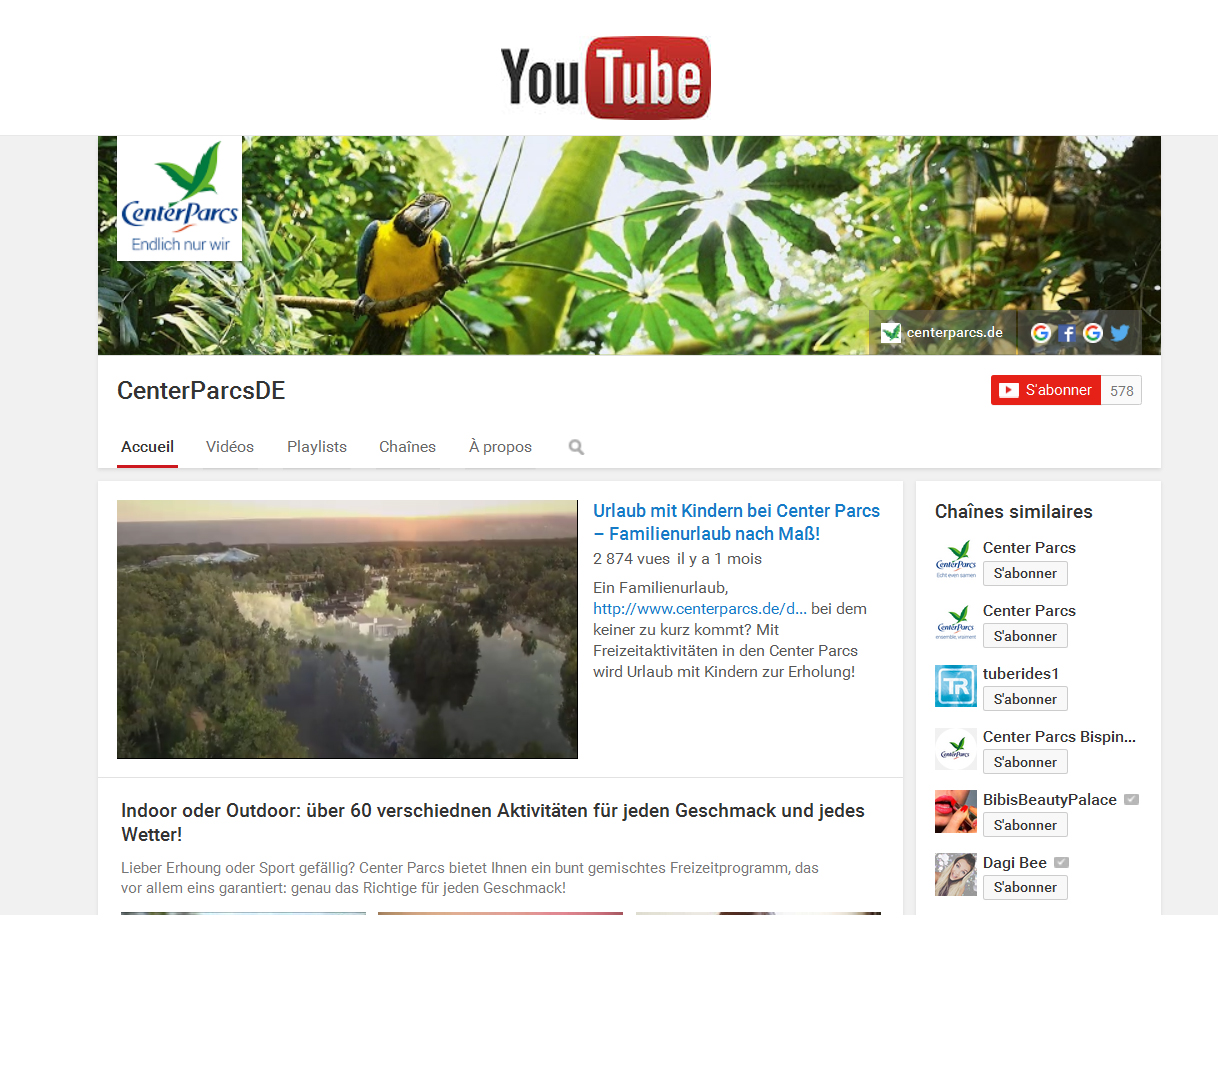 Center Parcs on YouTube